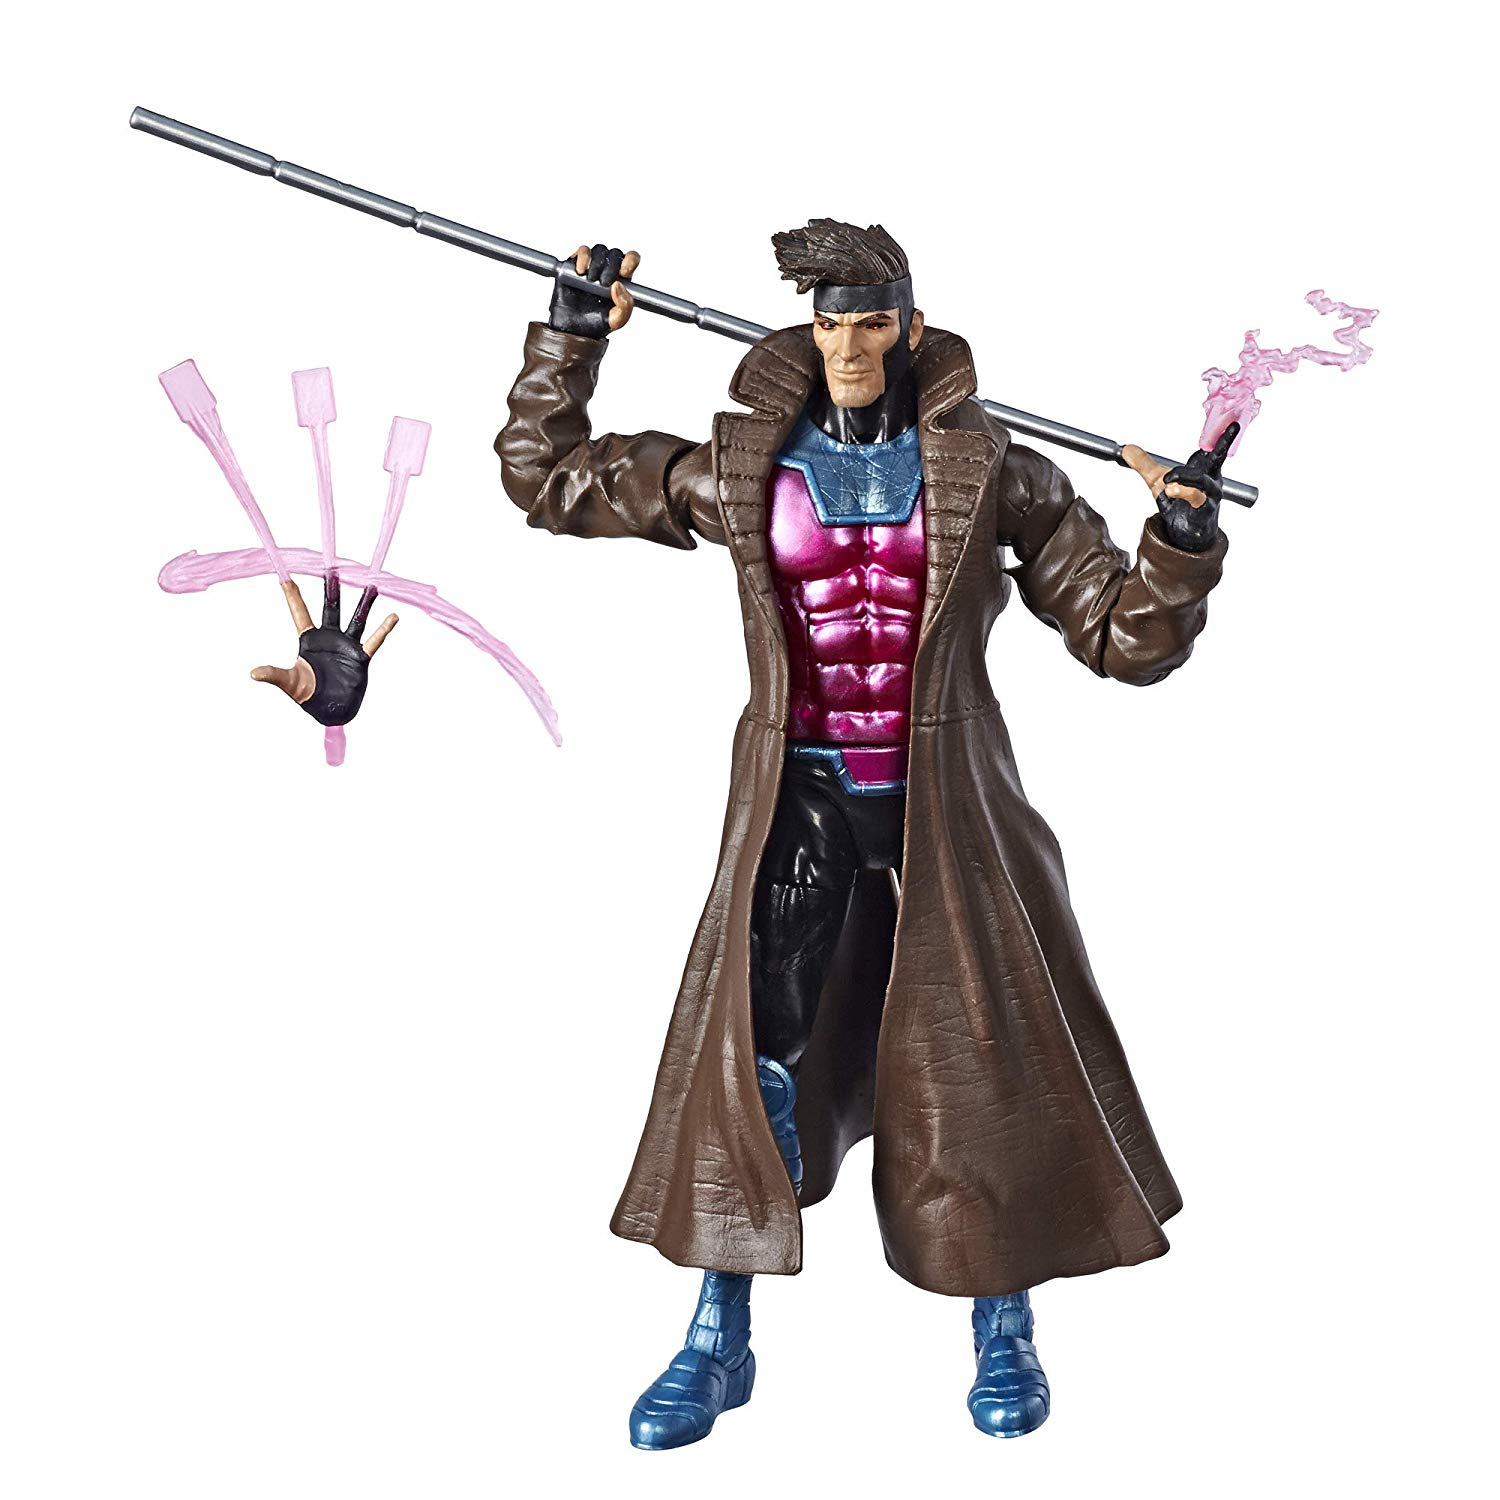 Marvel Legends Series 6-inch Collectible Action Figure Gambit Toy (X-Men Collection) by Hasbro